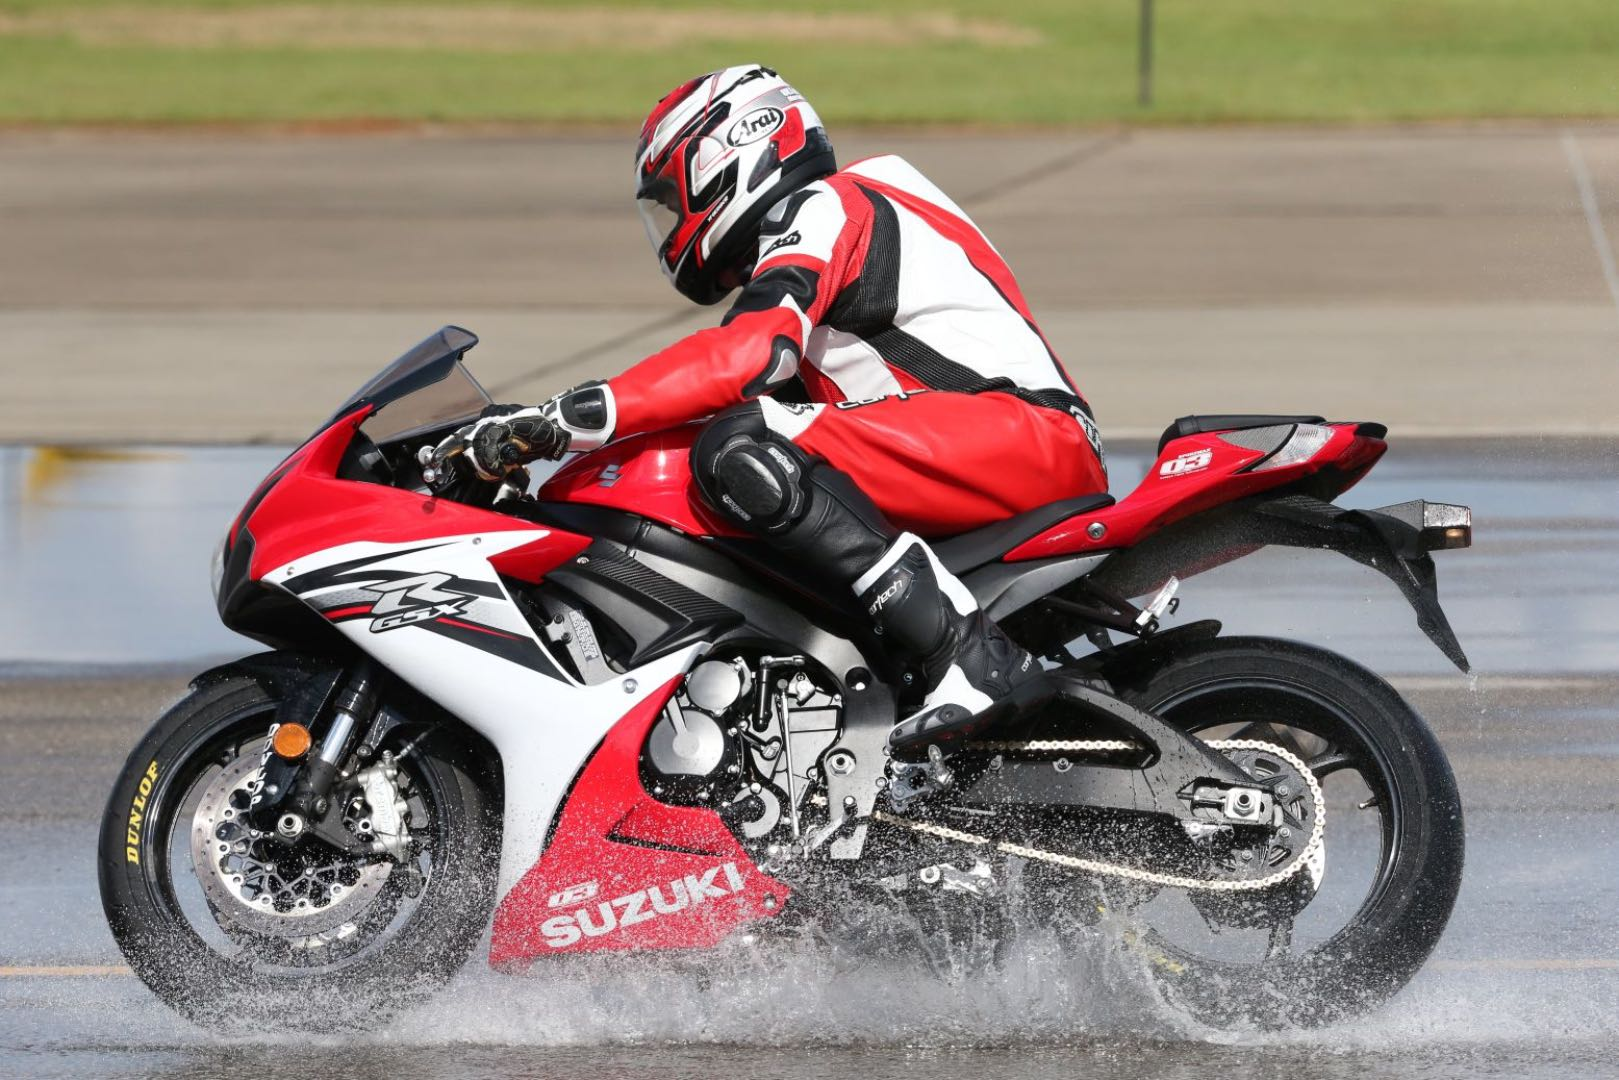 Motorcycle traction in rain